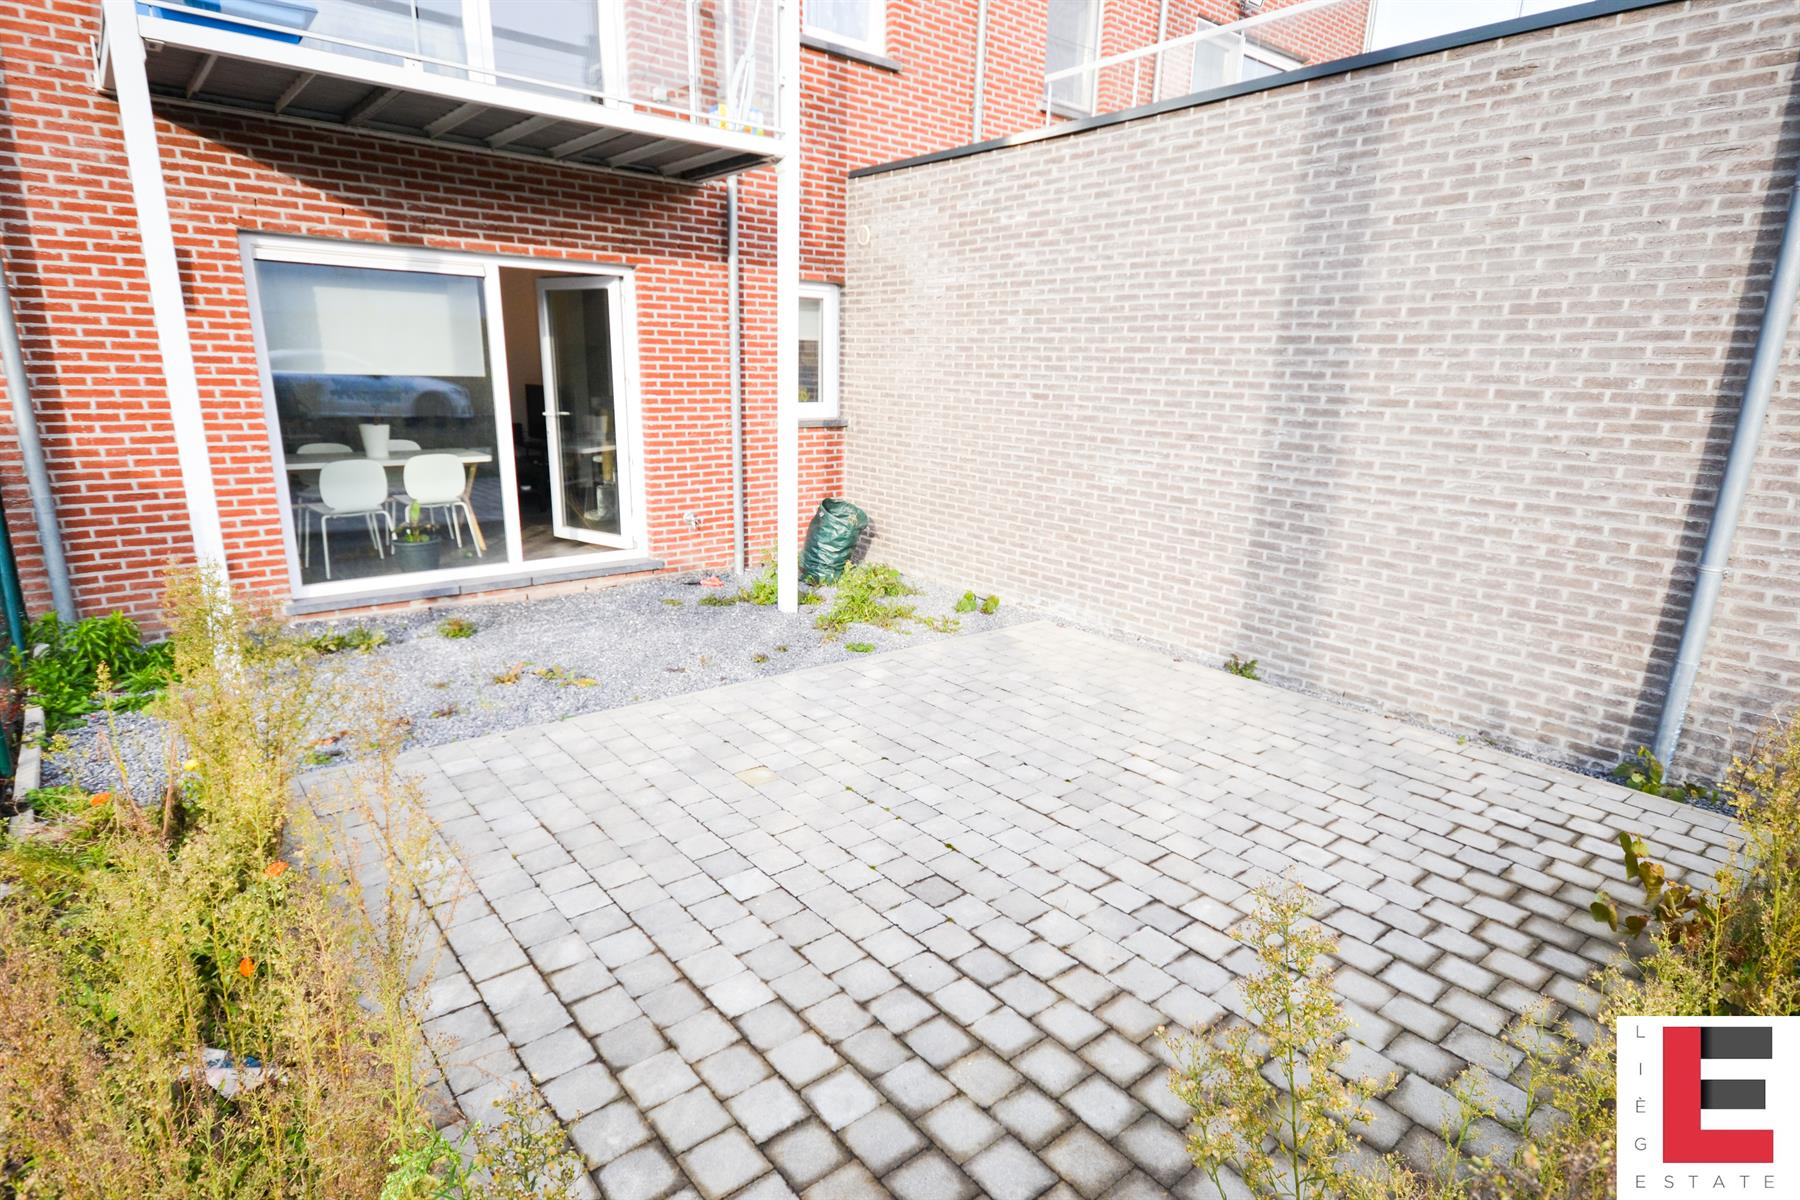 Ground floor with garden - Liege - #3914641-8